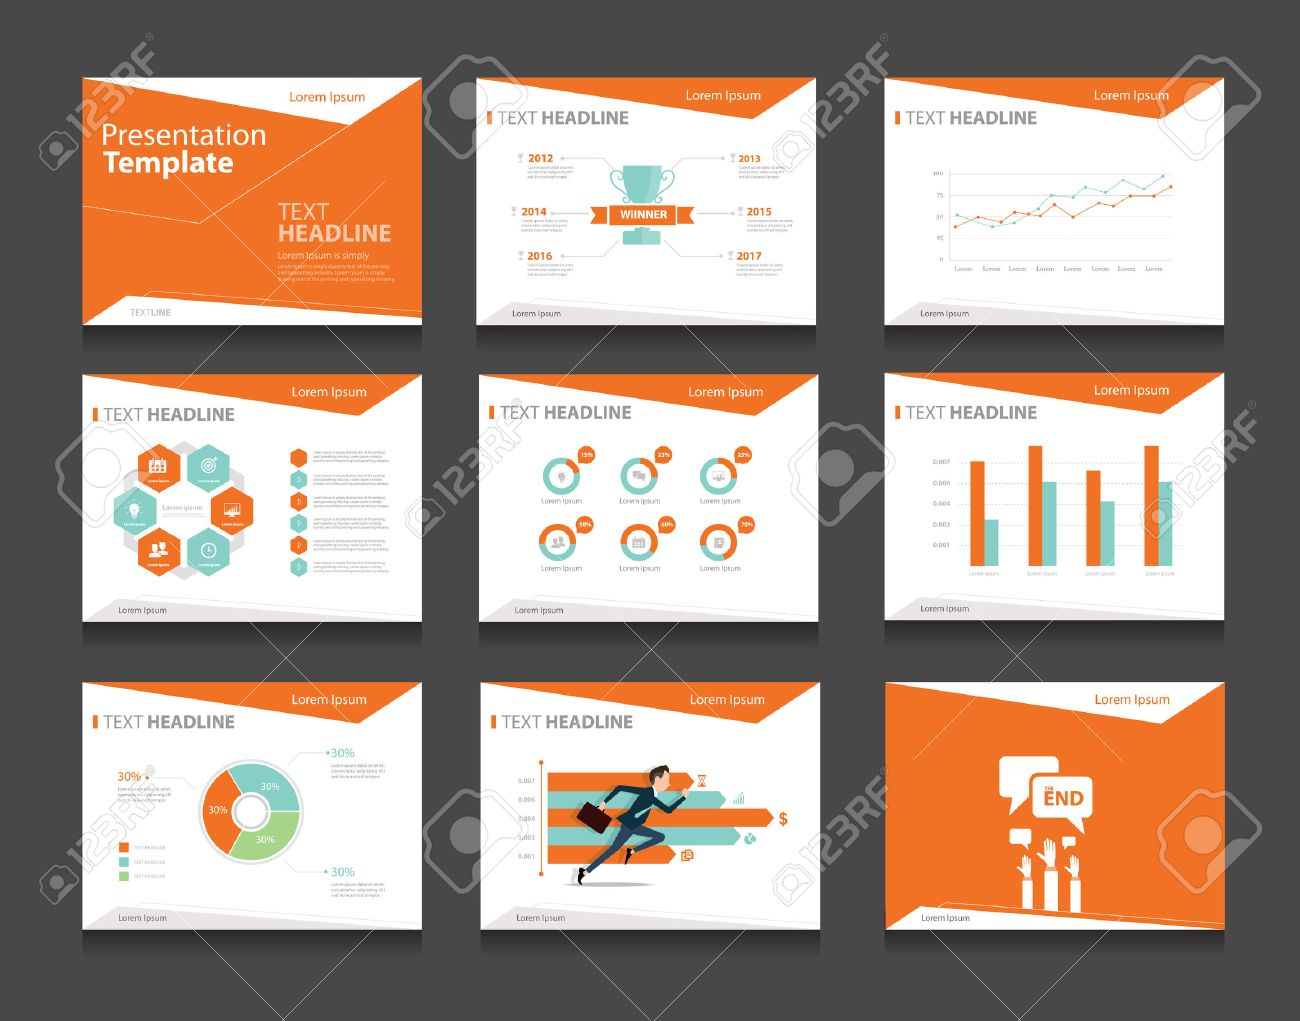 Orange infographic business presentation template setpowerpoint orange infographic business presentation template setpowerpoint template design backgrounds stock vector 43682943 toneelgroepblik Images